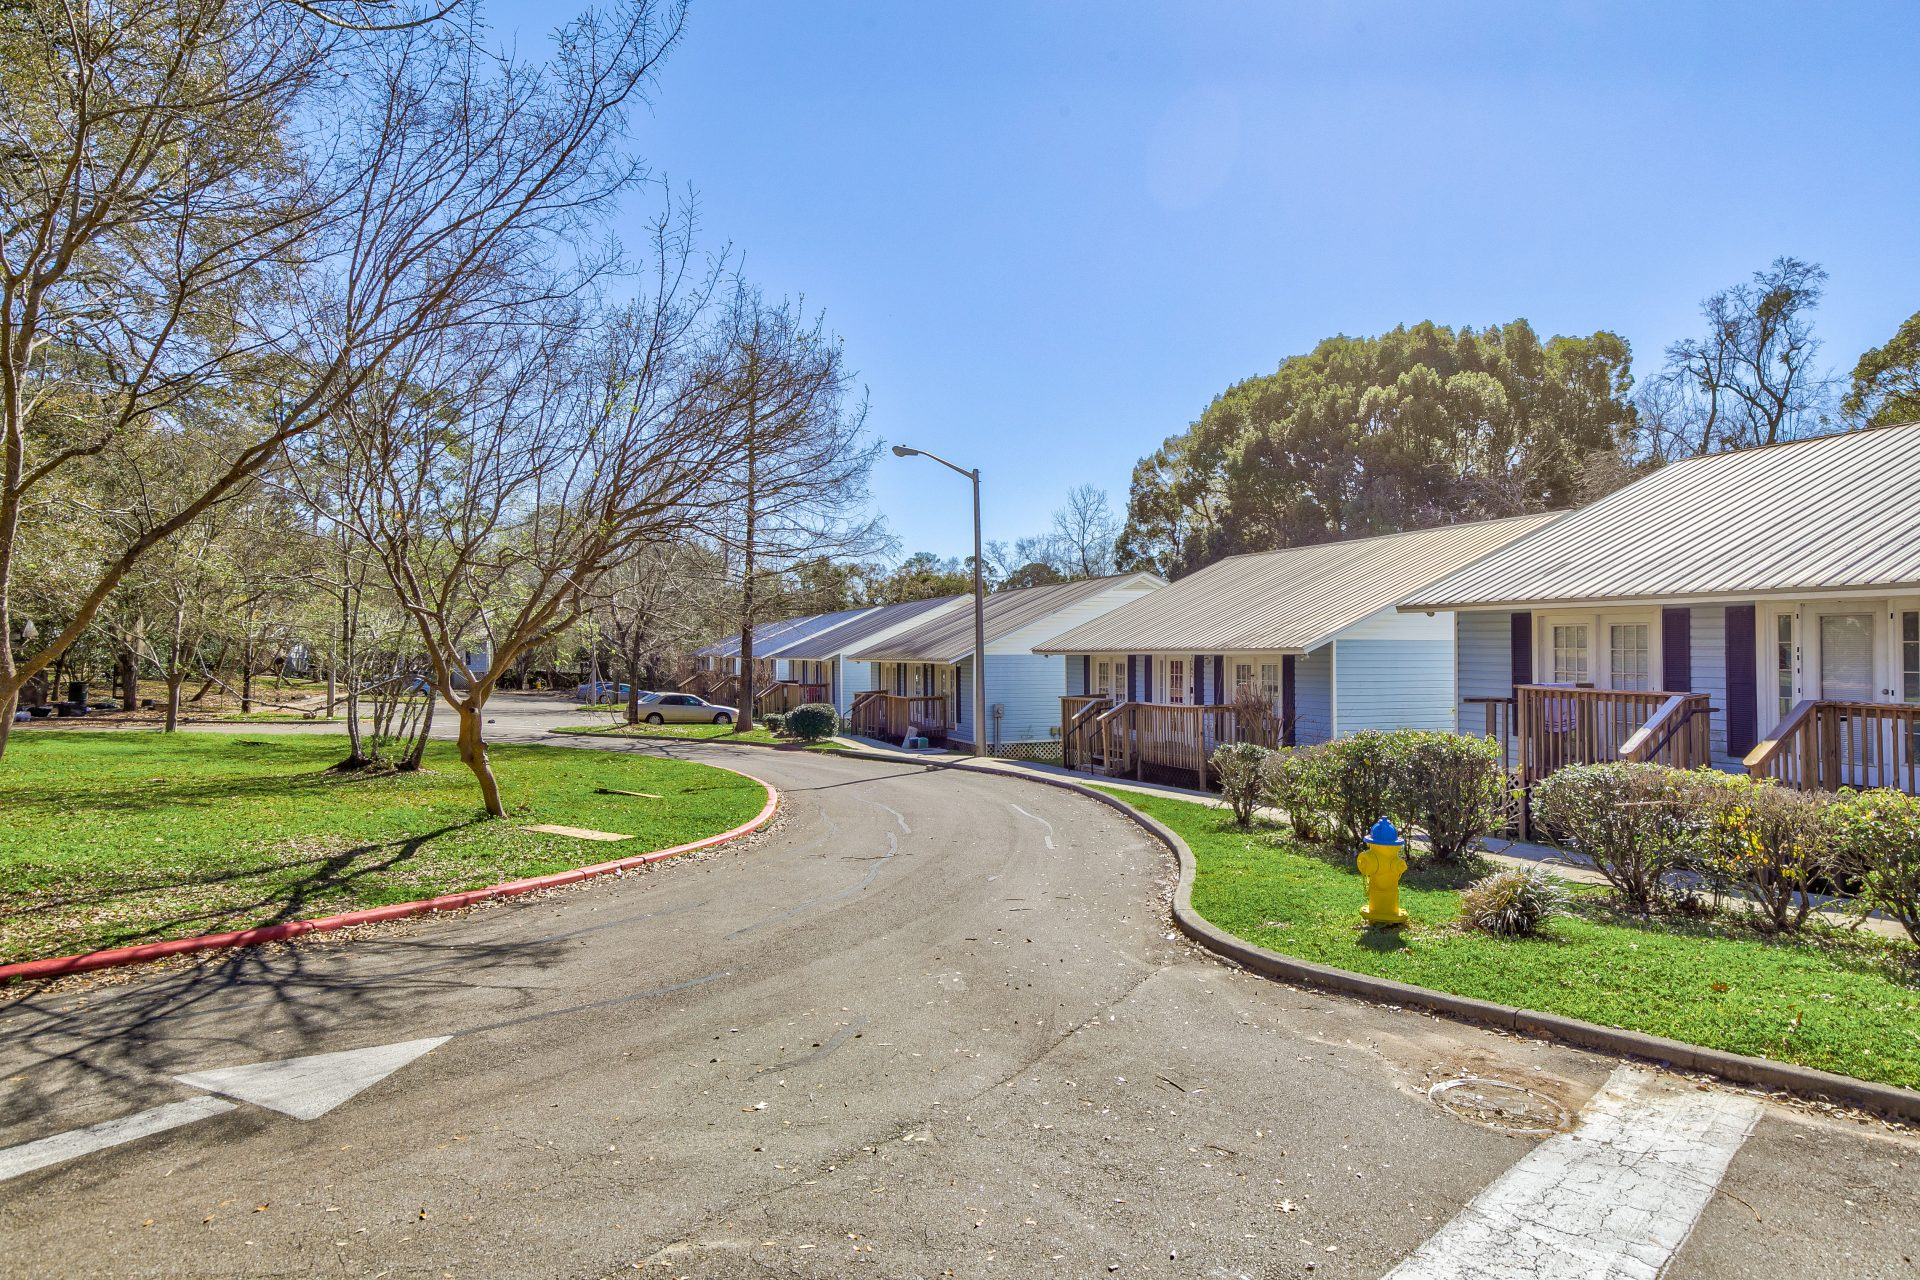 The_Cottages_at_Magnolia-FINAL-FULL_RES-19